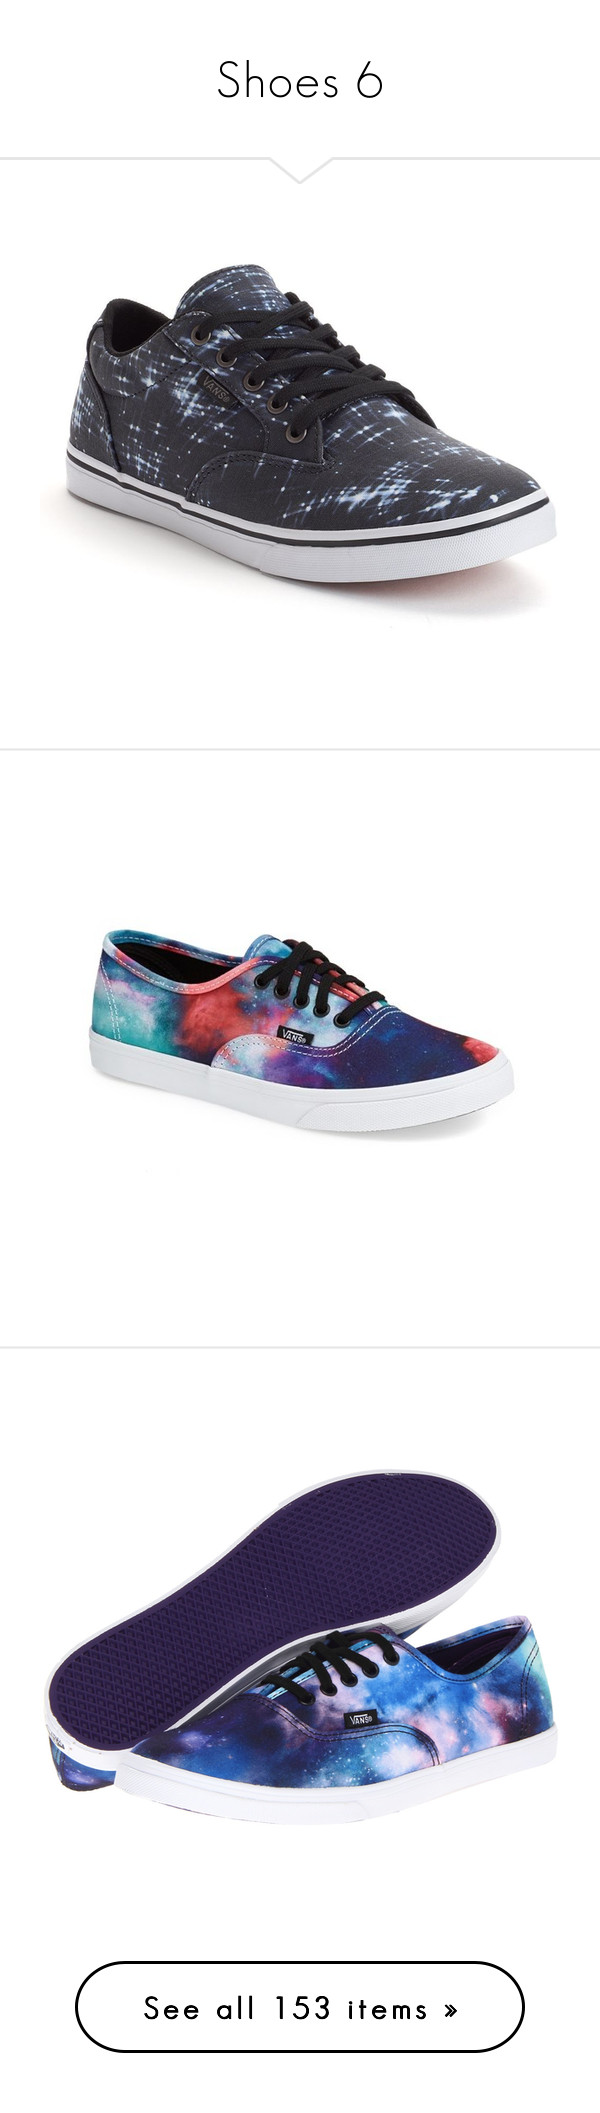 """""""Shoes 6"""" by wwetnagirl ❤ liked on Polyvore featuring shoes, sneakers, black, vans sneakers, star sneakers, lace shoes, lacing sneakers, vans trainers, vans and sapatos"""